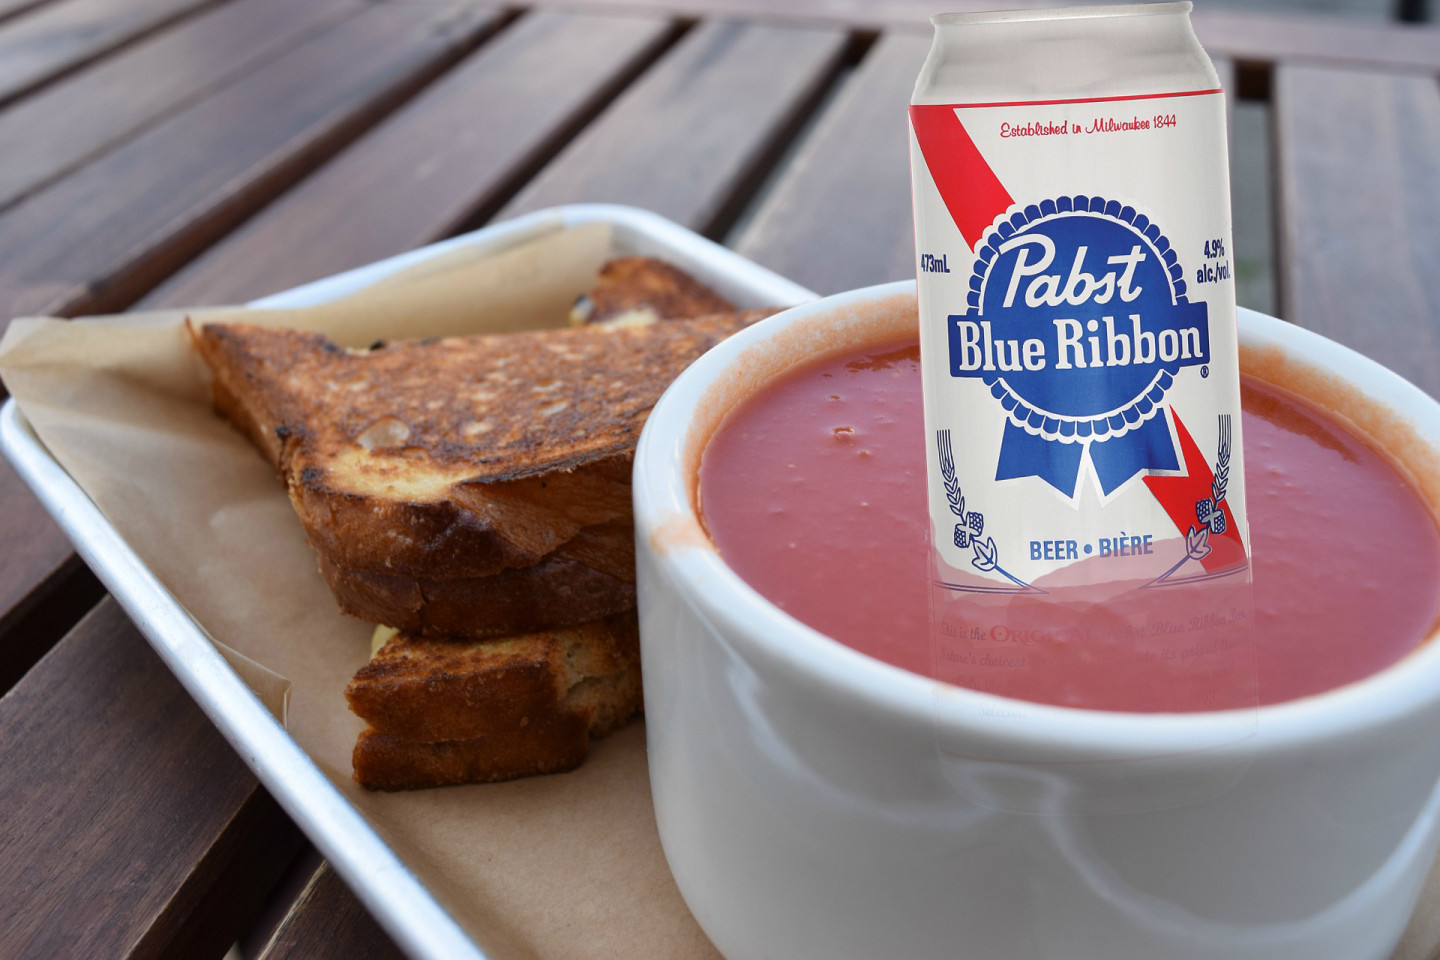 Why Is There PBR In My Food?